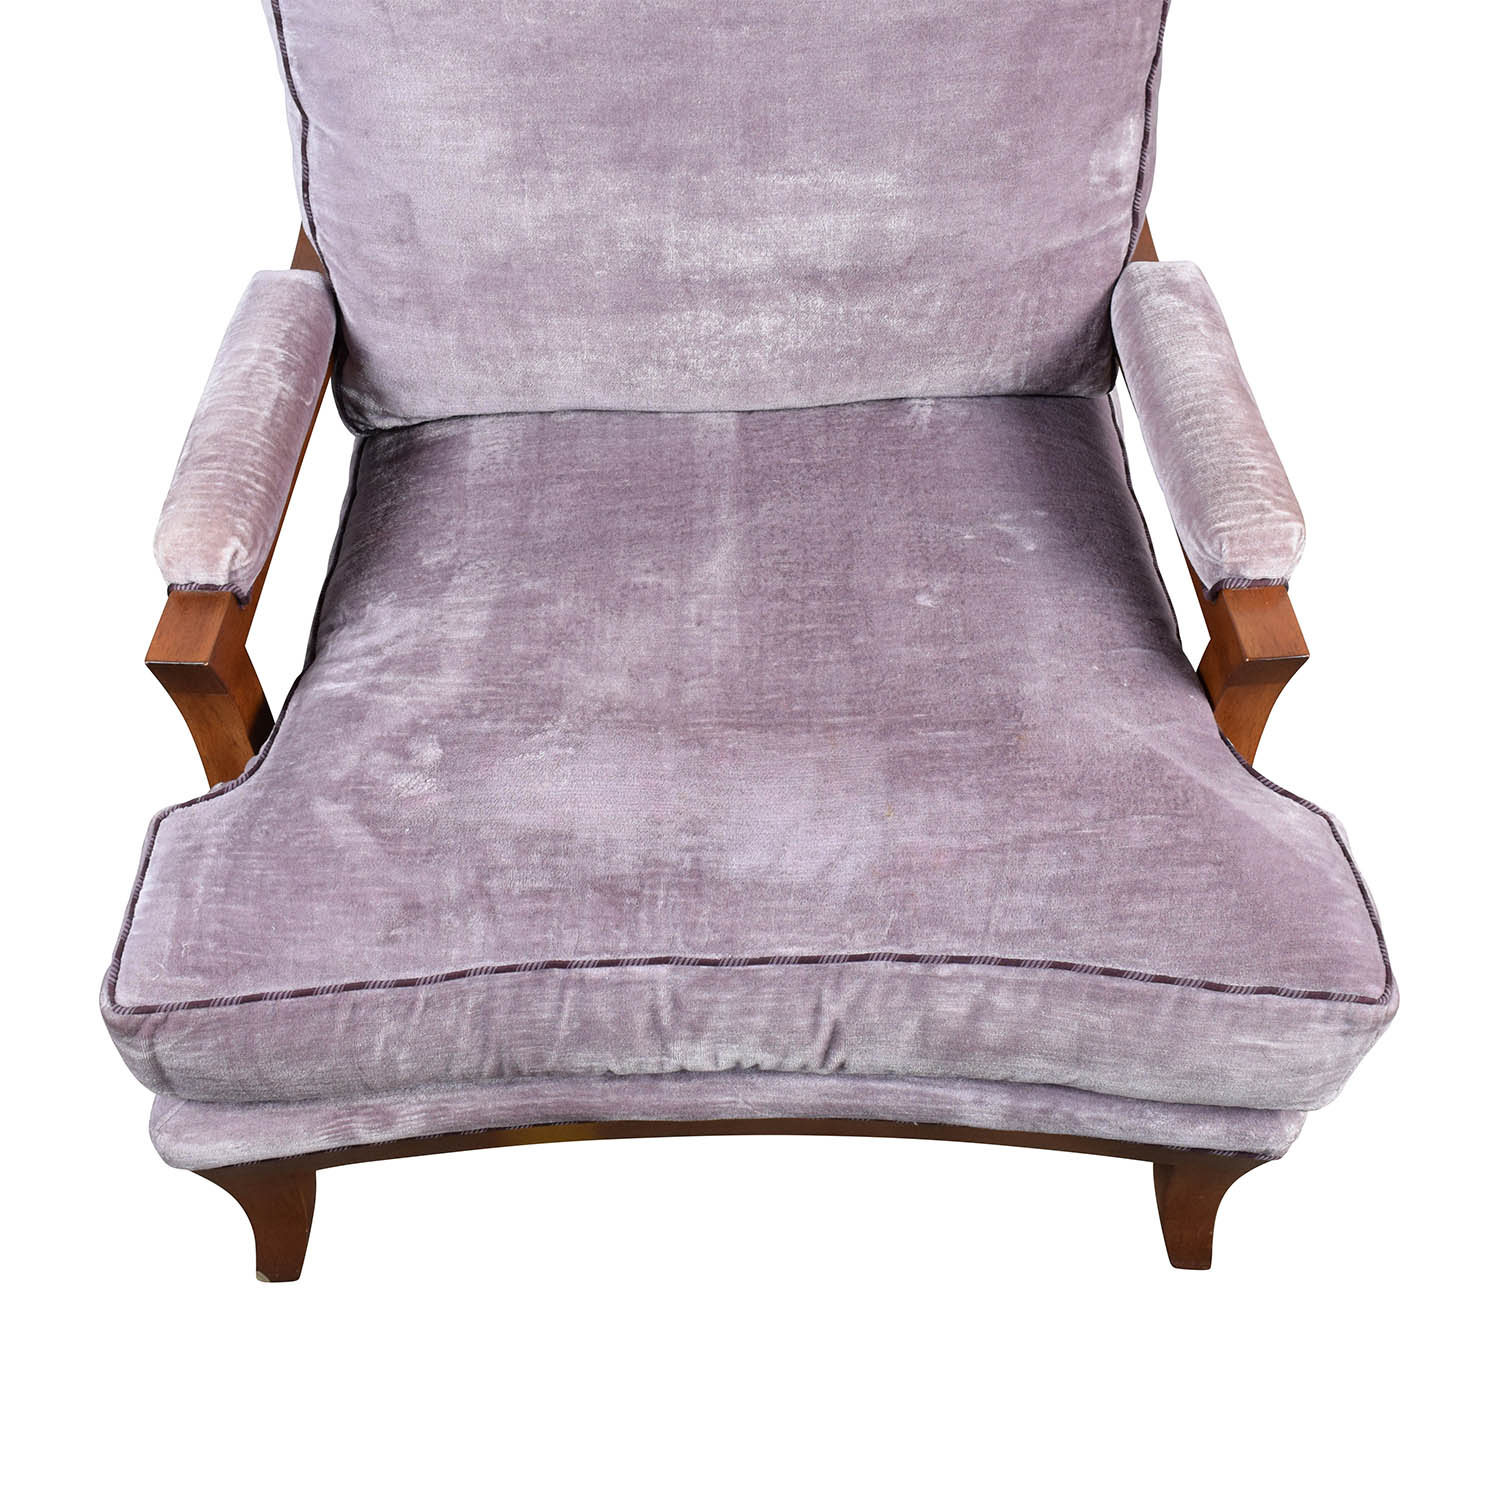 87% OFF Purple Velvet Accent Arm Chair Chairs